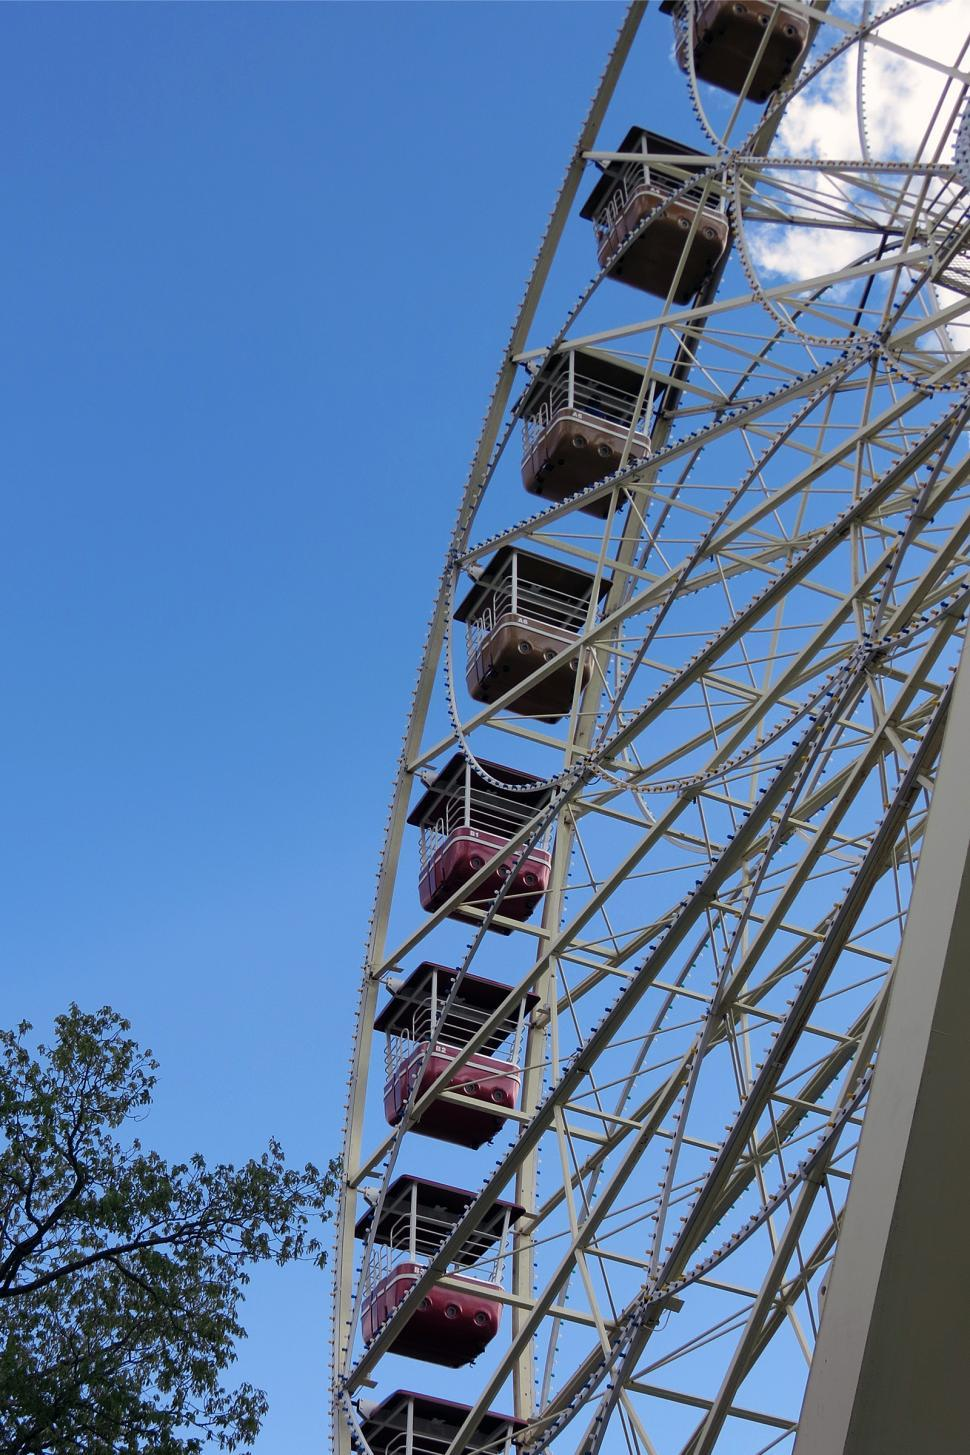 Download Free Stock HD Photo of Ferris Wheel Over Blue Sky Online